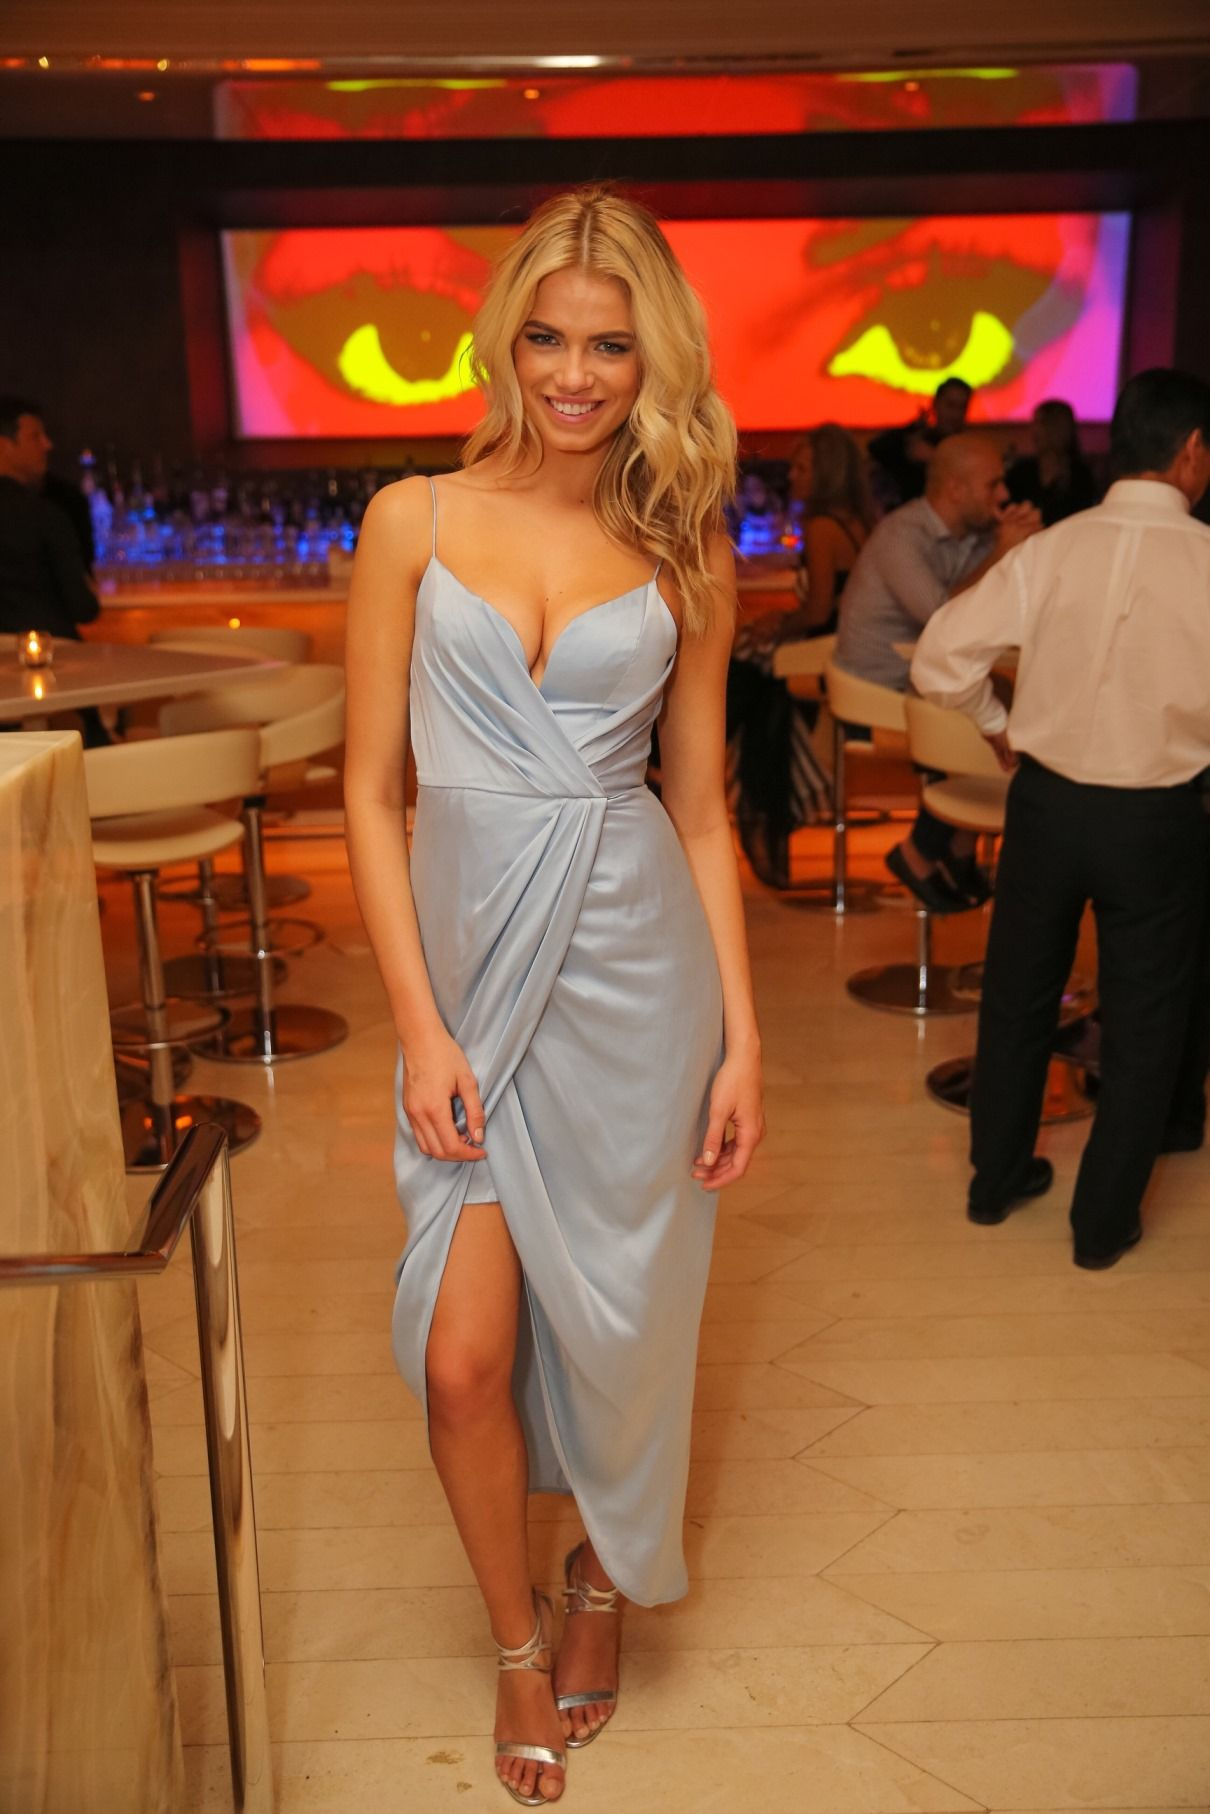 Sports Illustrated Swimsuit Issue cover star, Hailey Clauson, dined ...